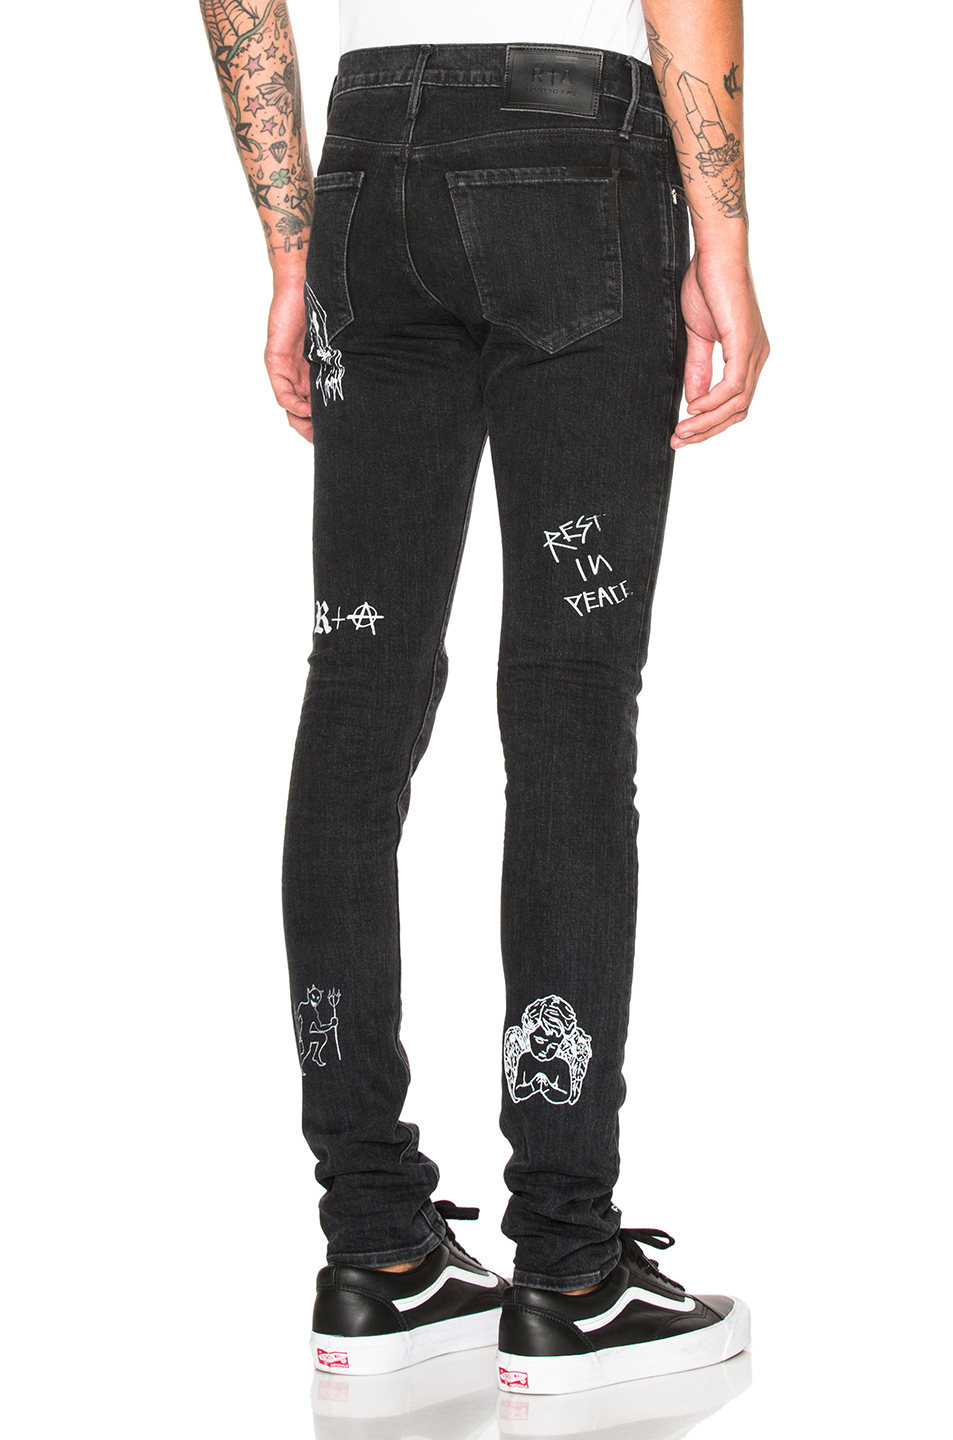 RtA Printed Jeans in Black